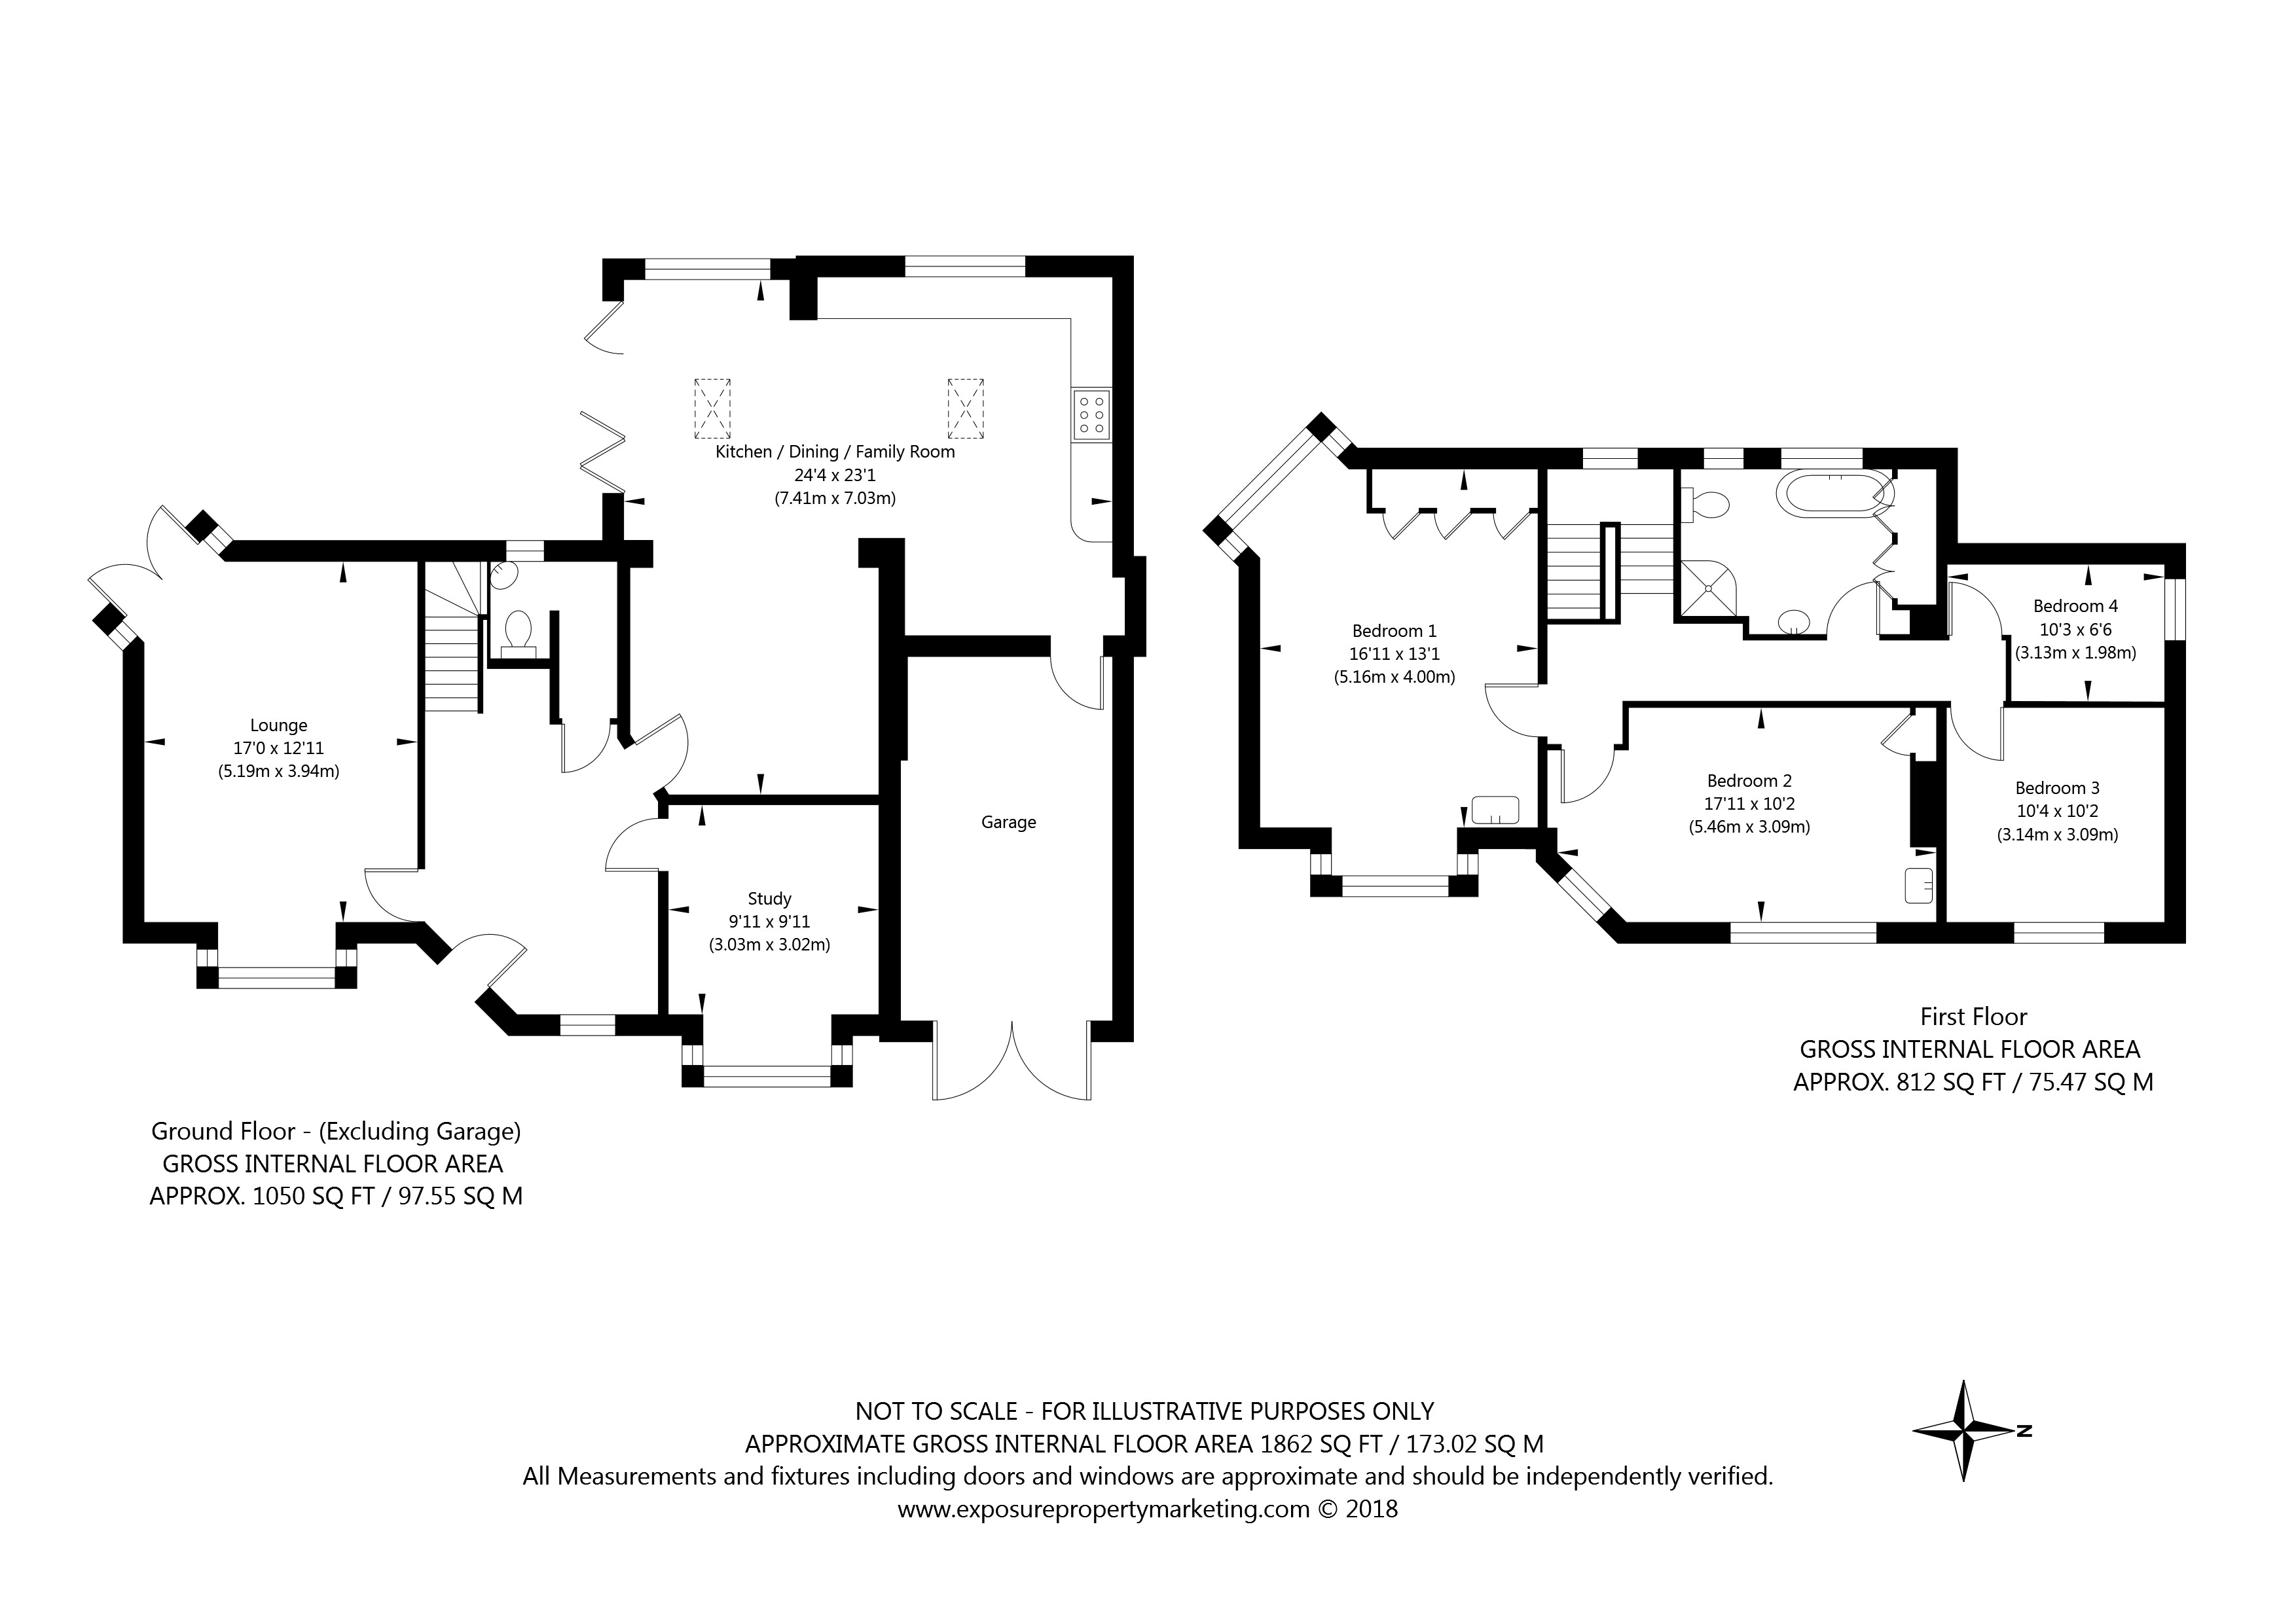 30 The Horseshoe, York property floorplan